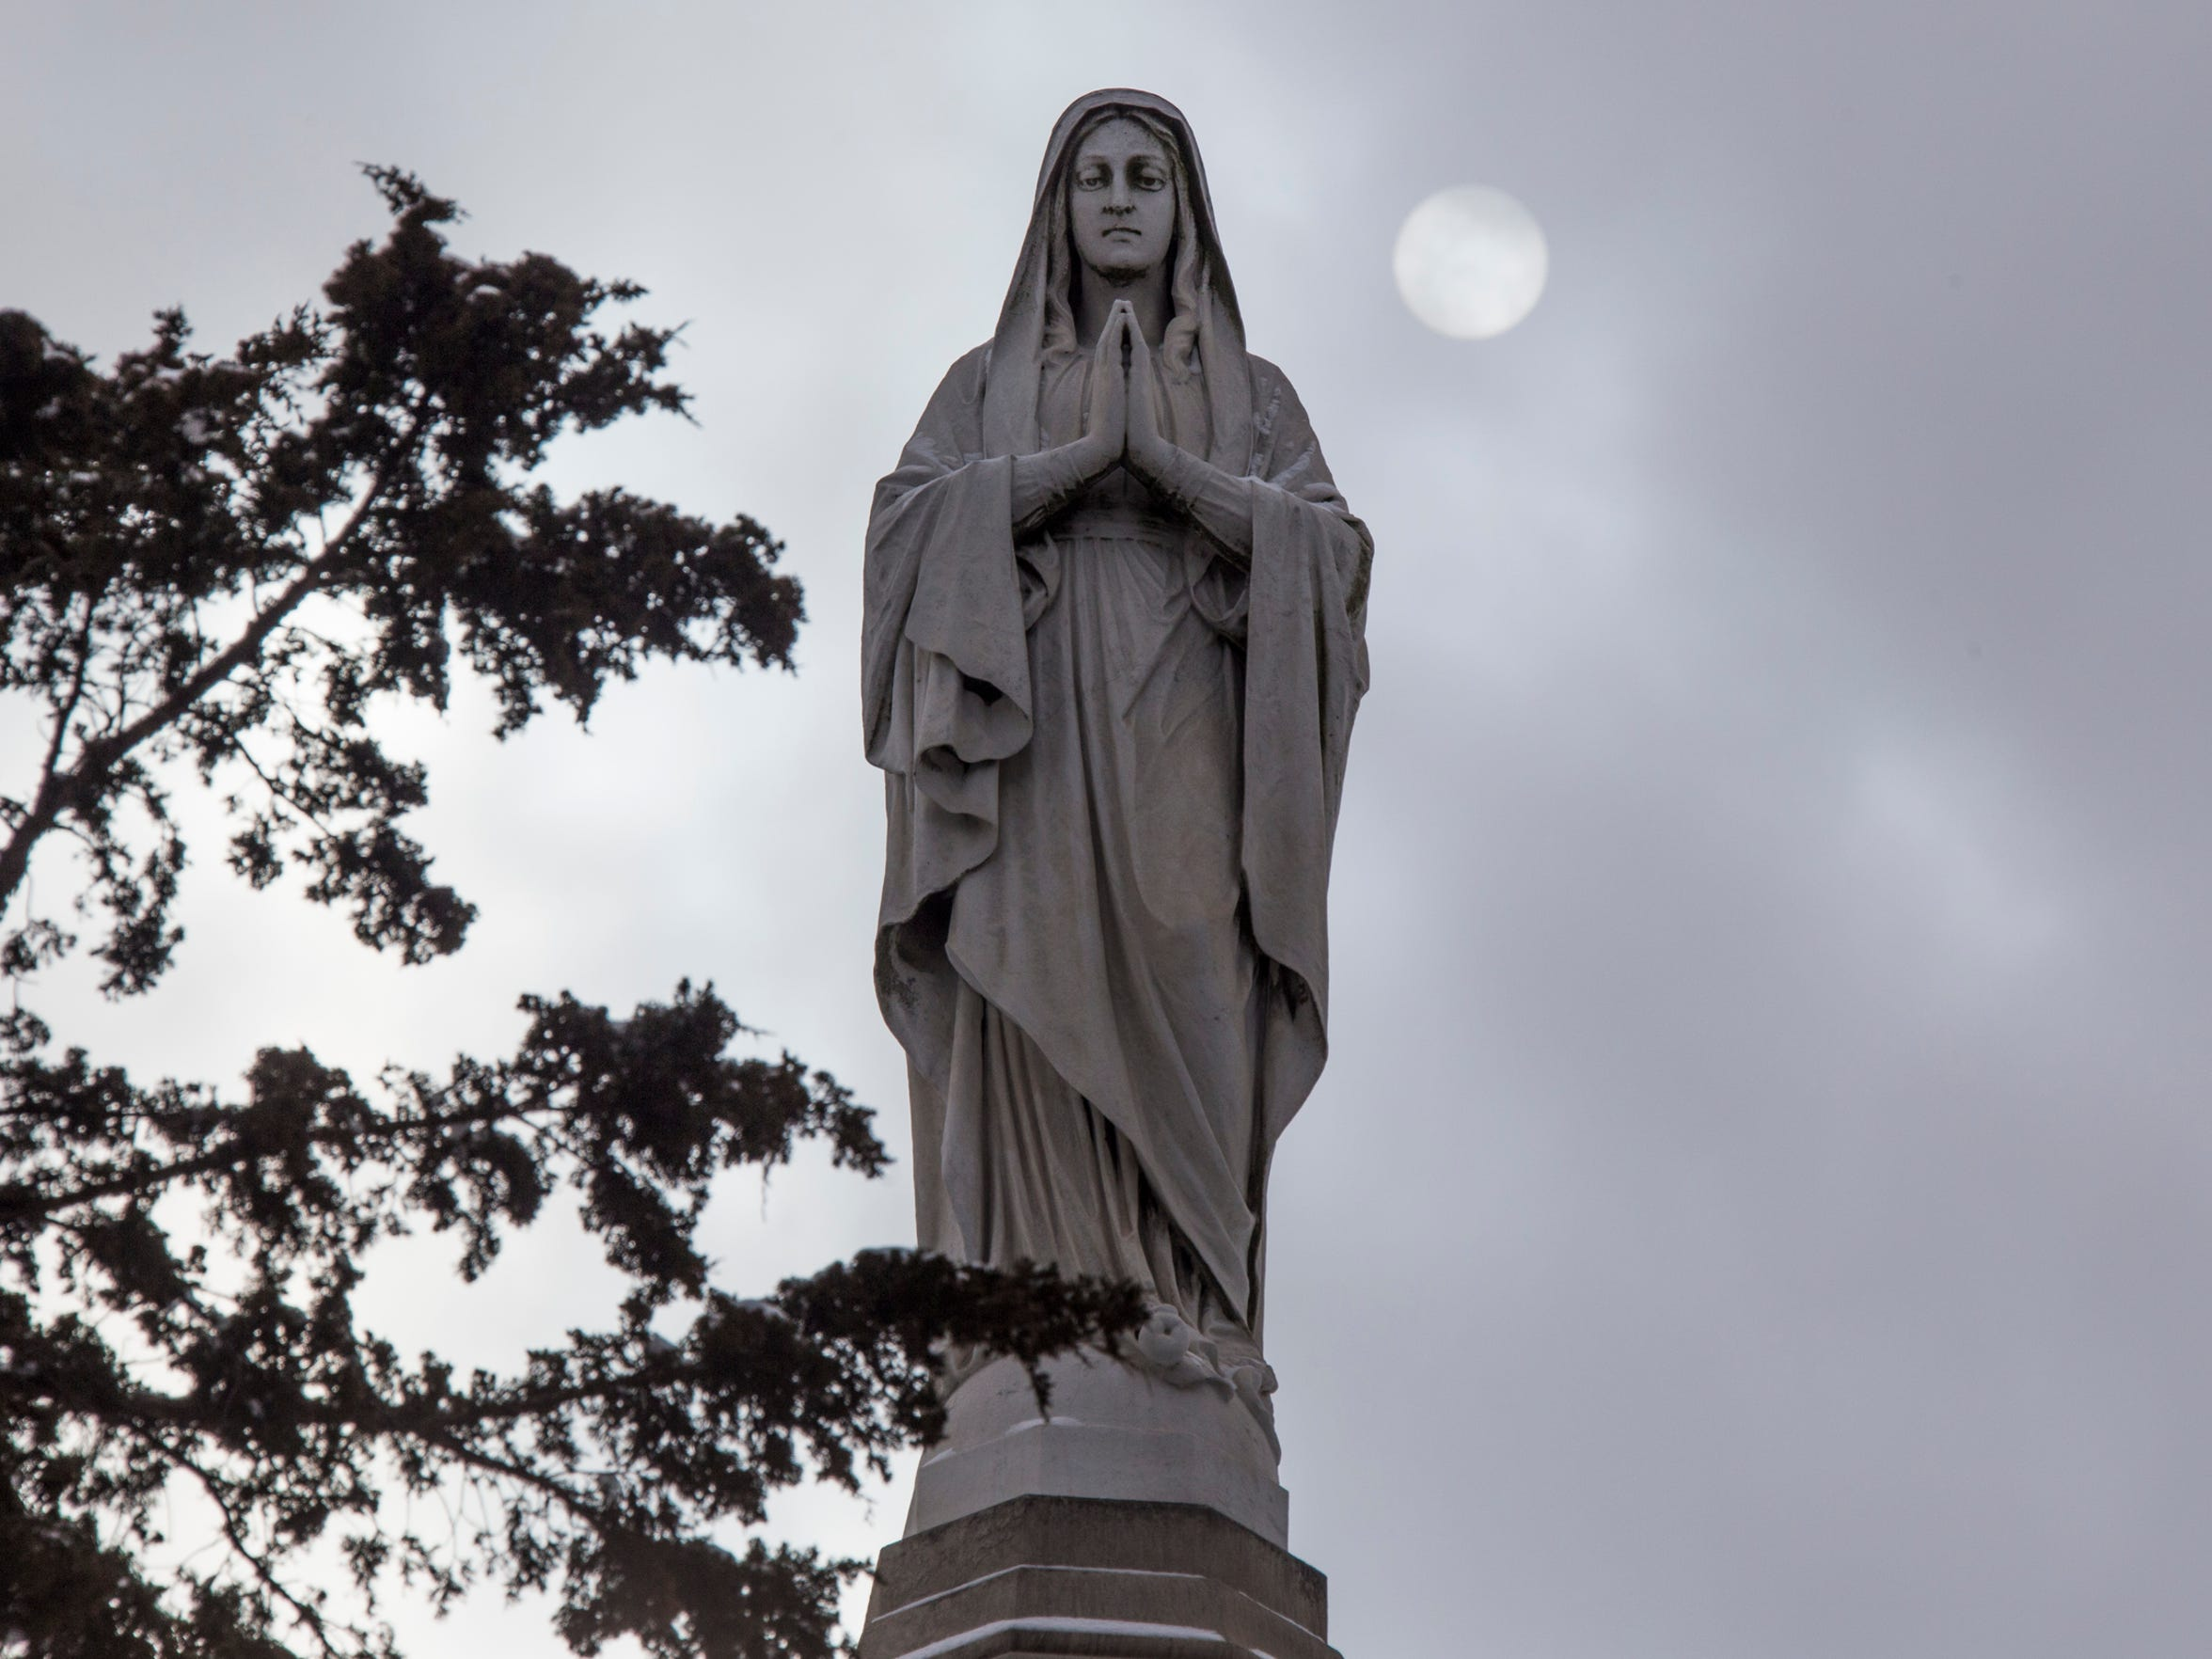 The Our Lady of Marygrove statue looks out from the